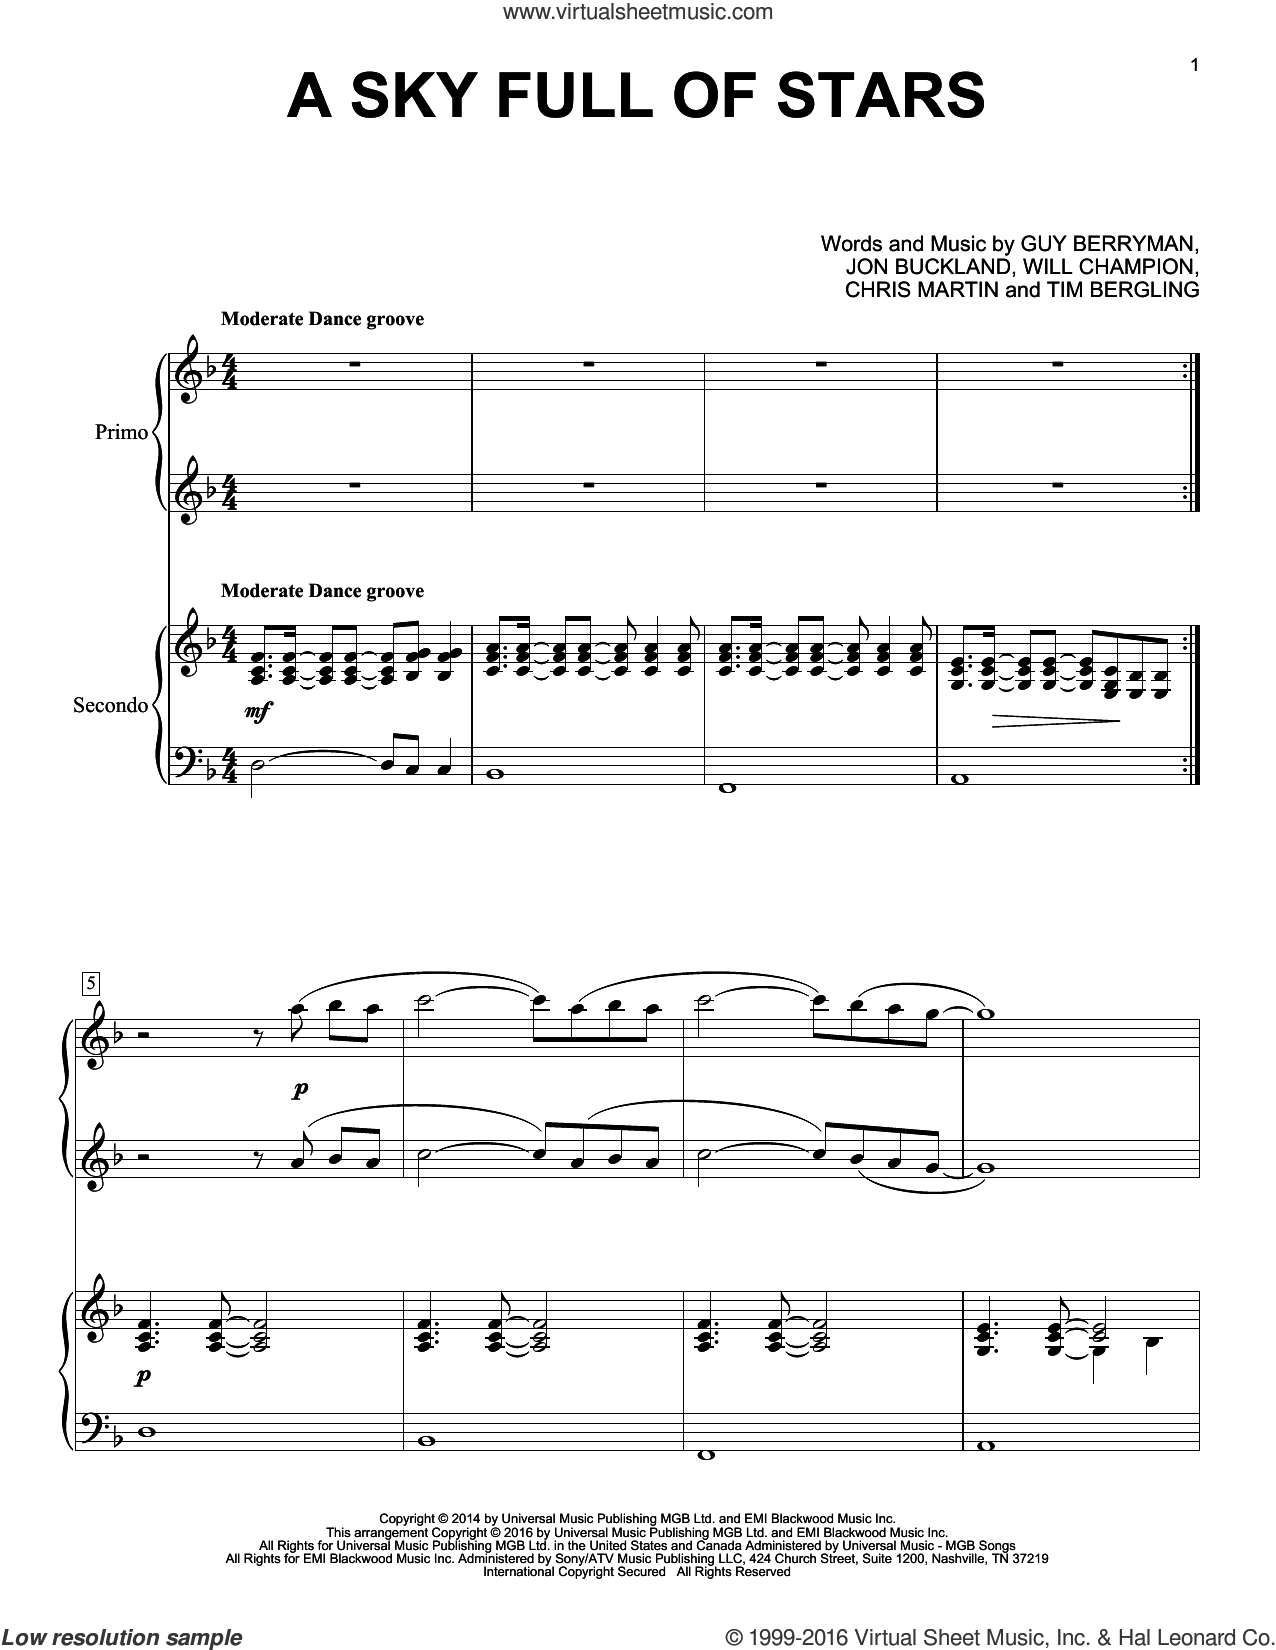 A Sky Full Of Stars sheet music for piano four hands (duets) by Will Champion, Coldplay, Chris Martin, Guy Berryman, Jon Buckland and Tim Bergling. Score Image Preview.